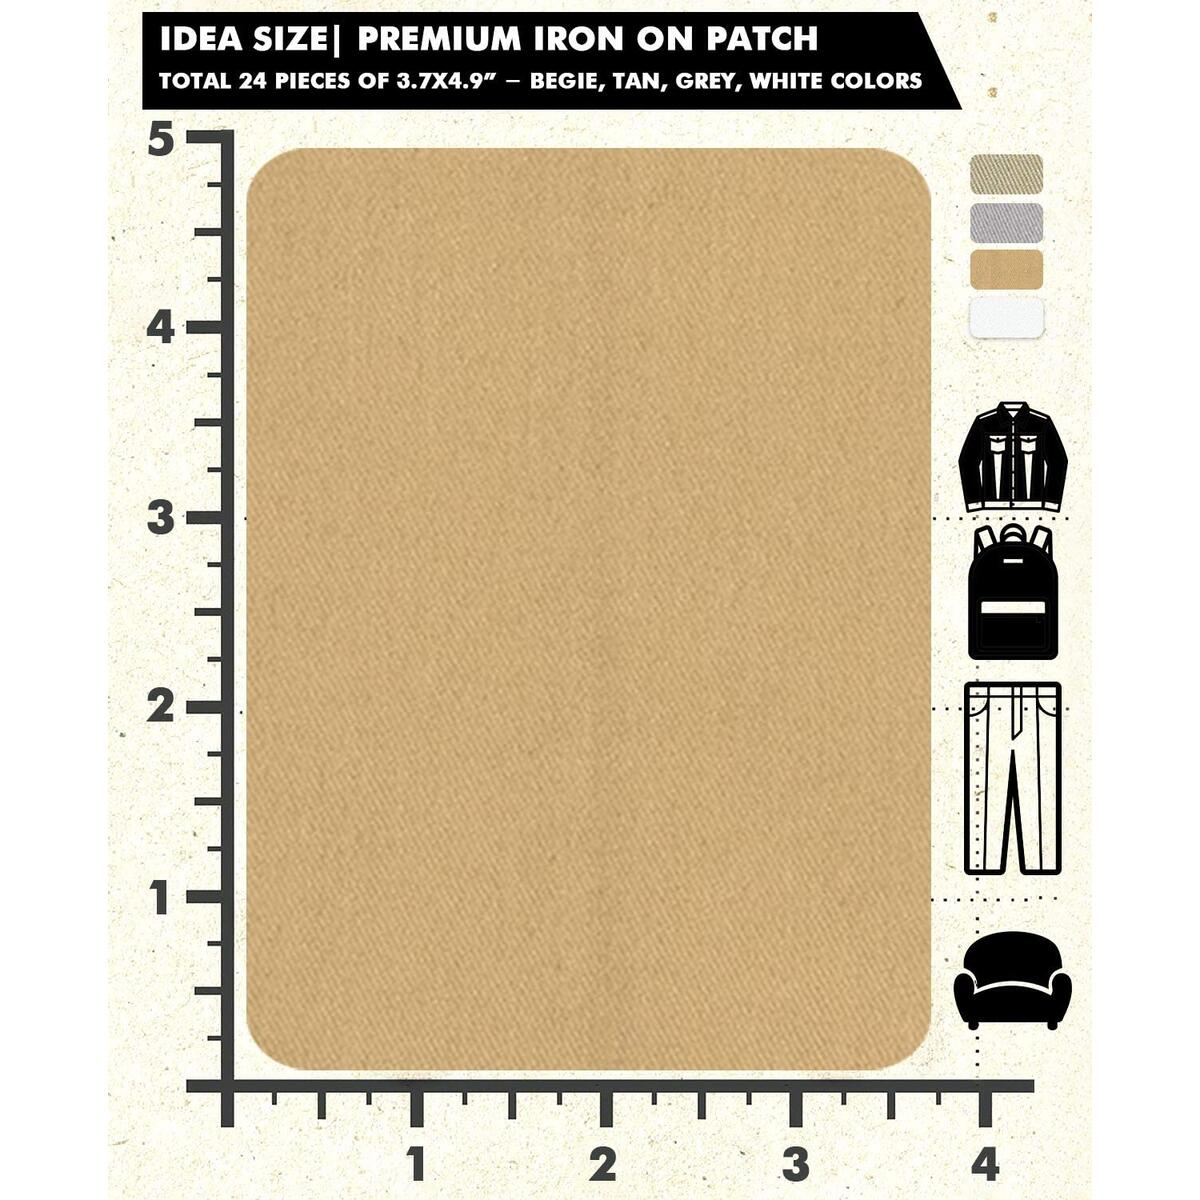 Repair Iron On Patches 4 Colors (White, Khaki, Tan, Begie)